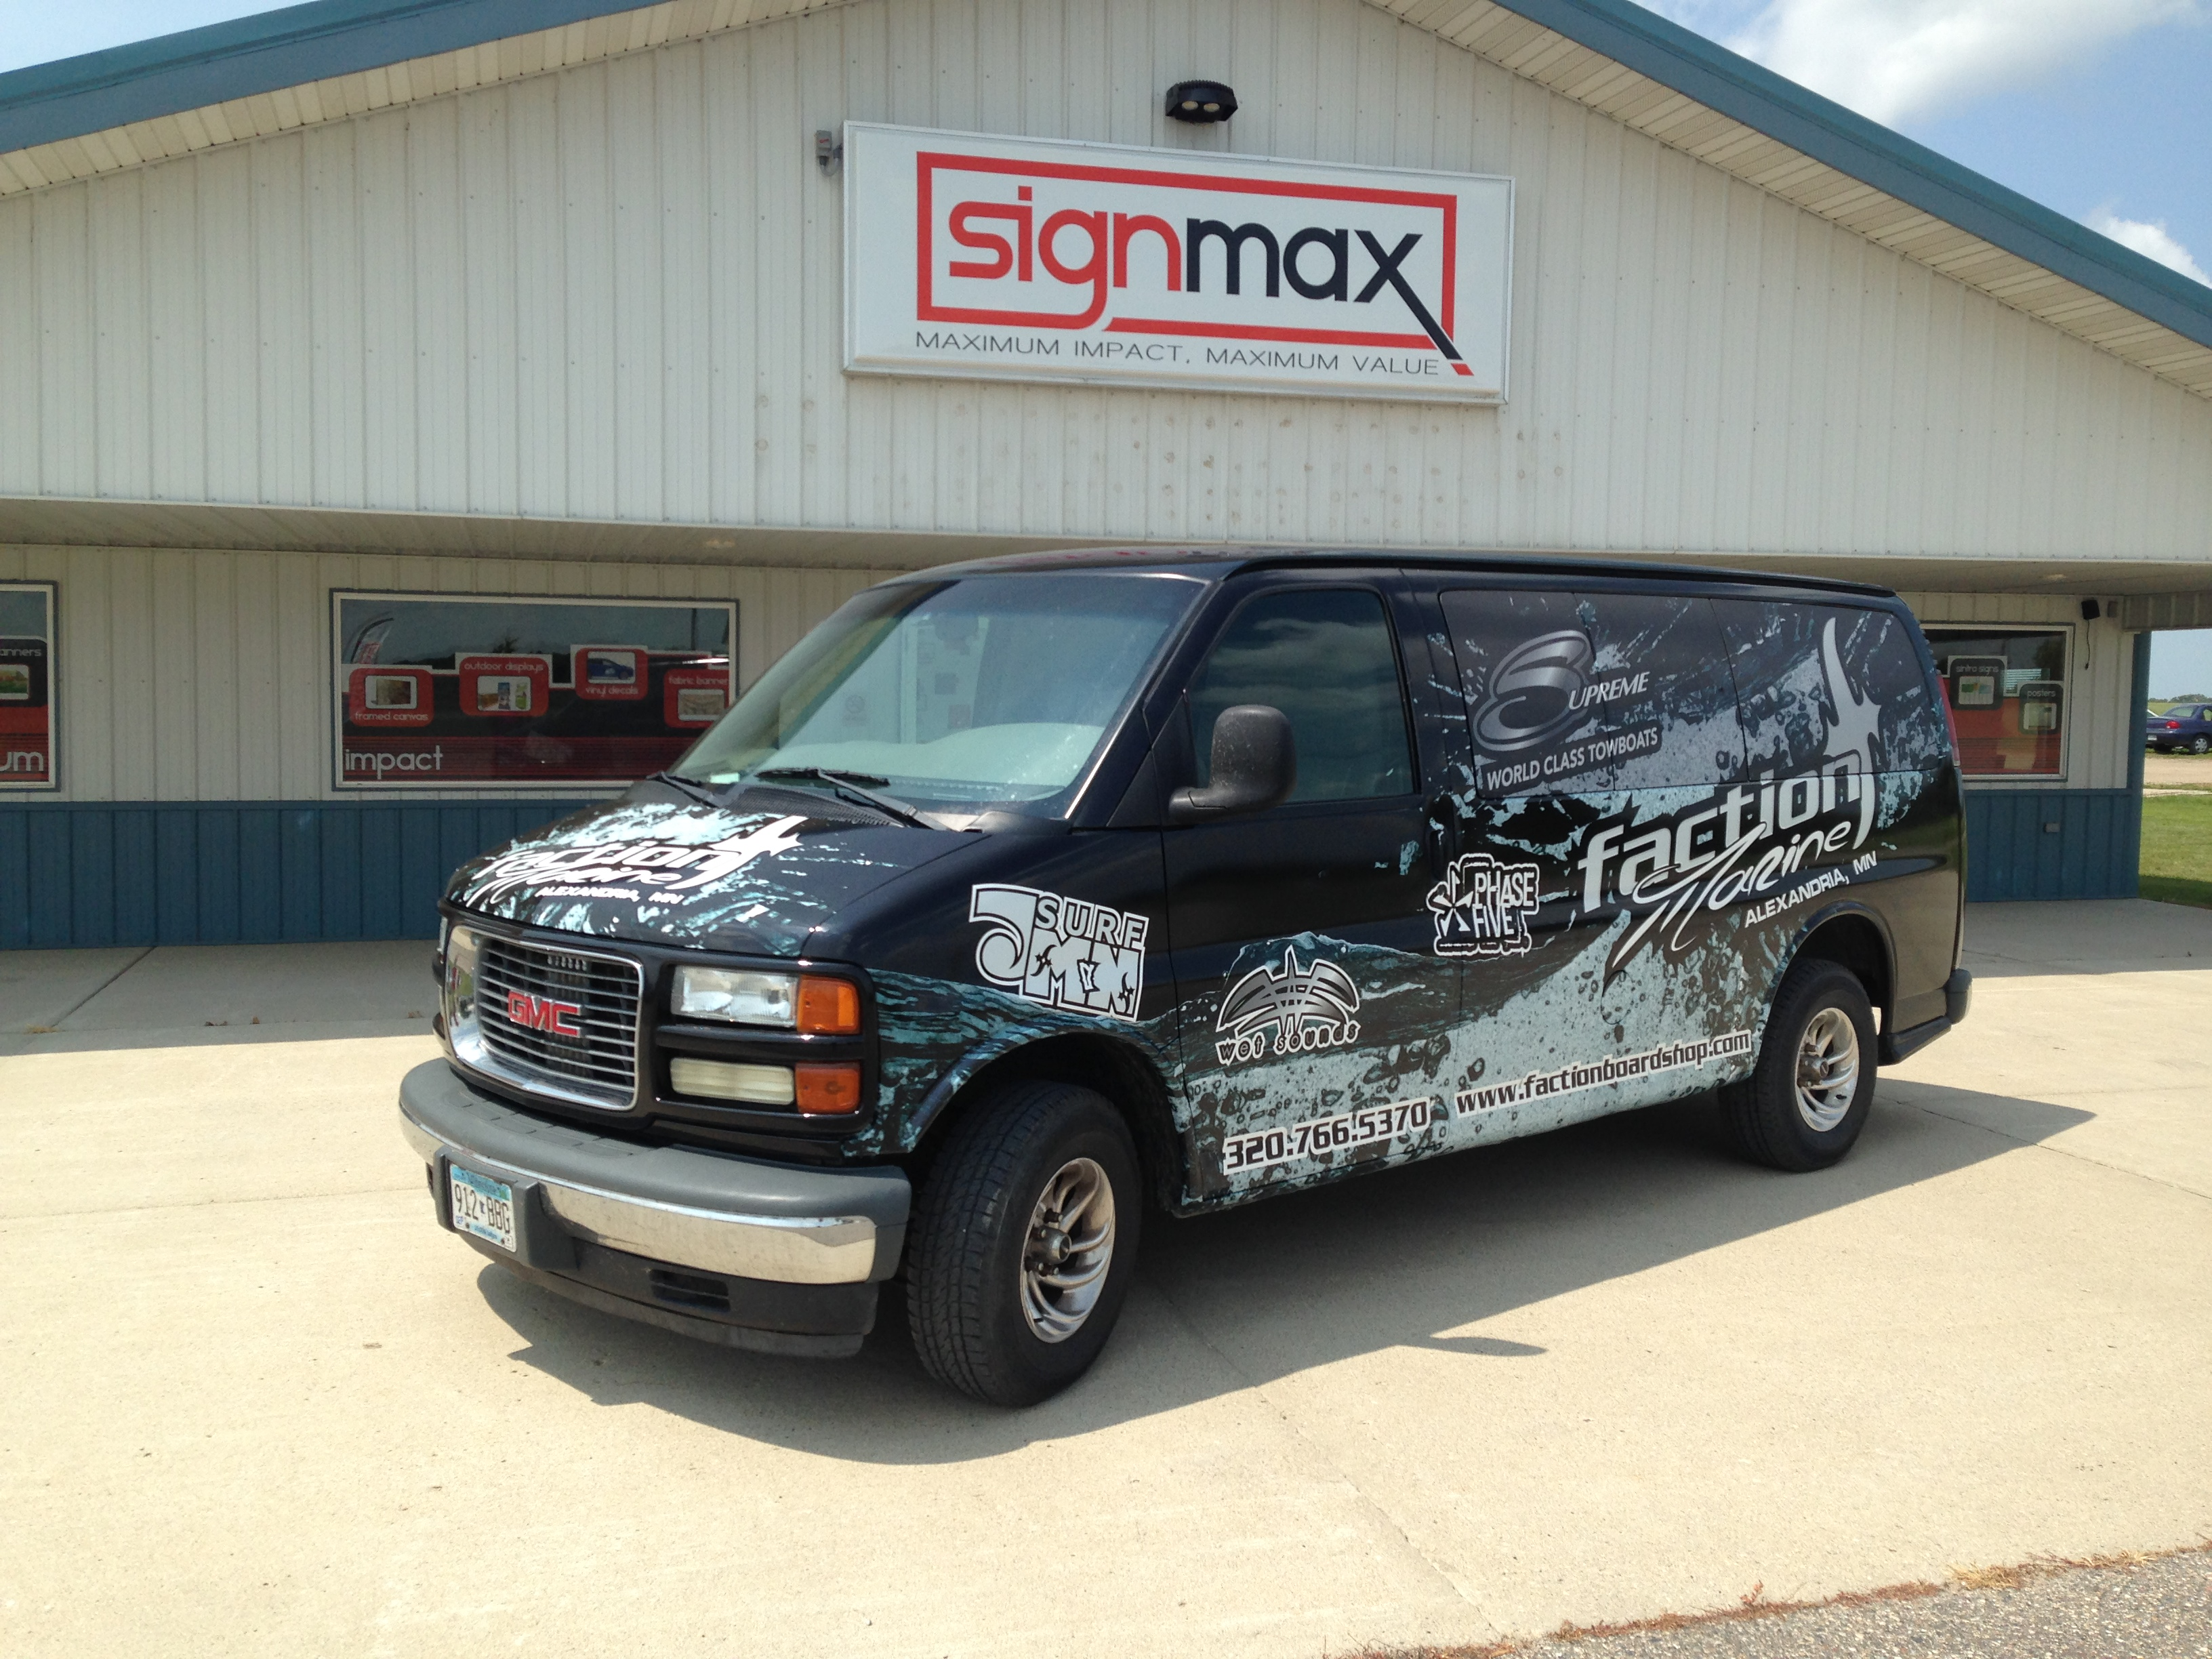 Faction Marine Vehicle Wrap | Signmax.com